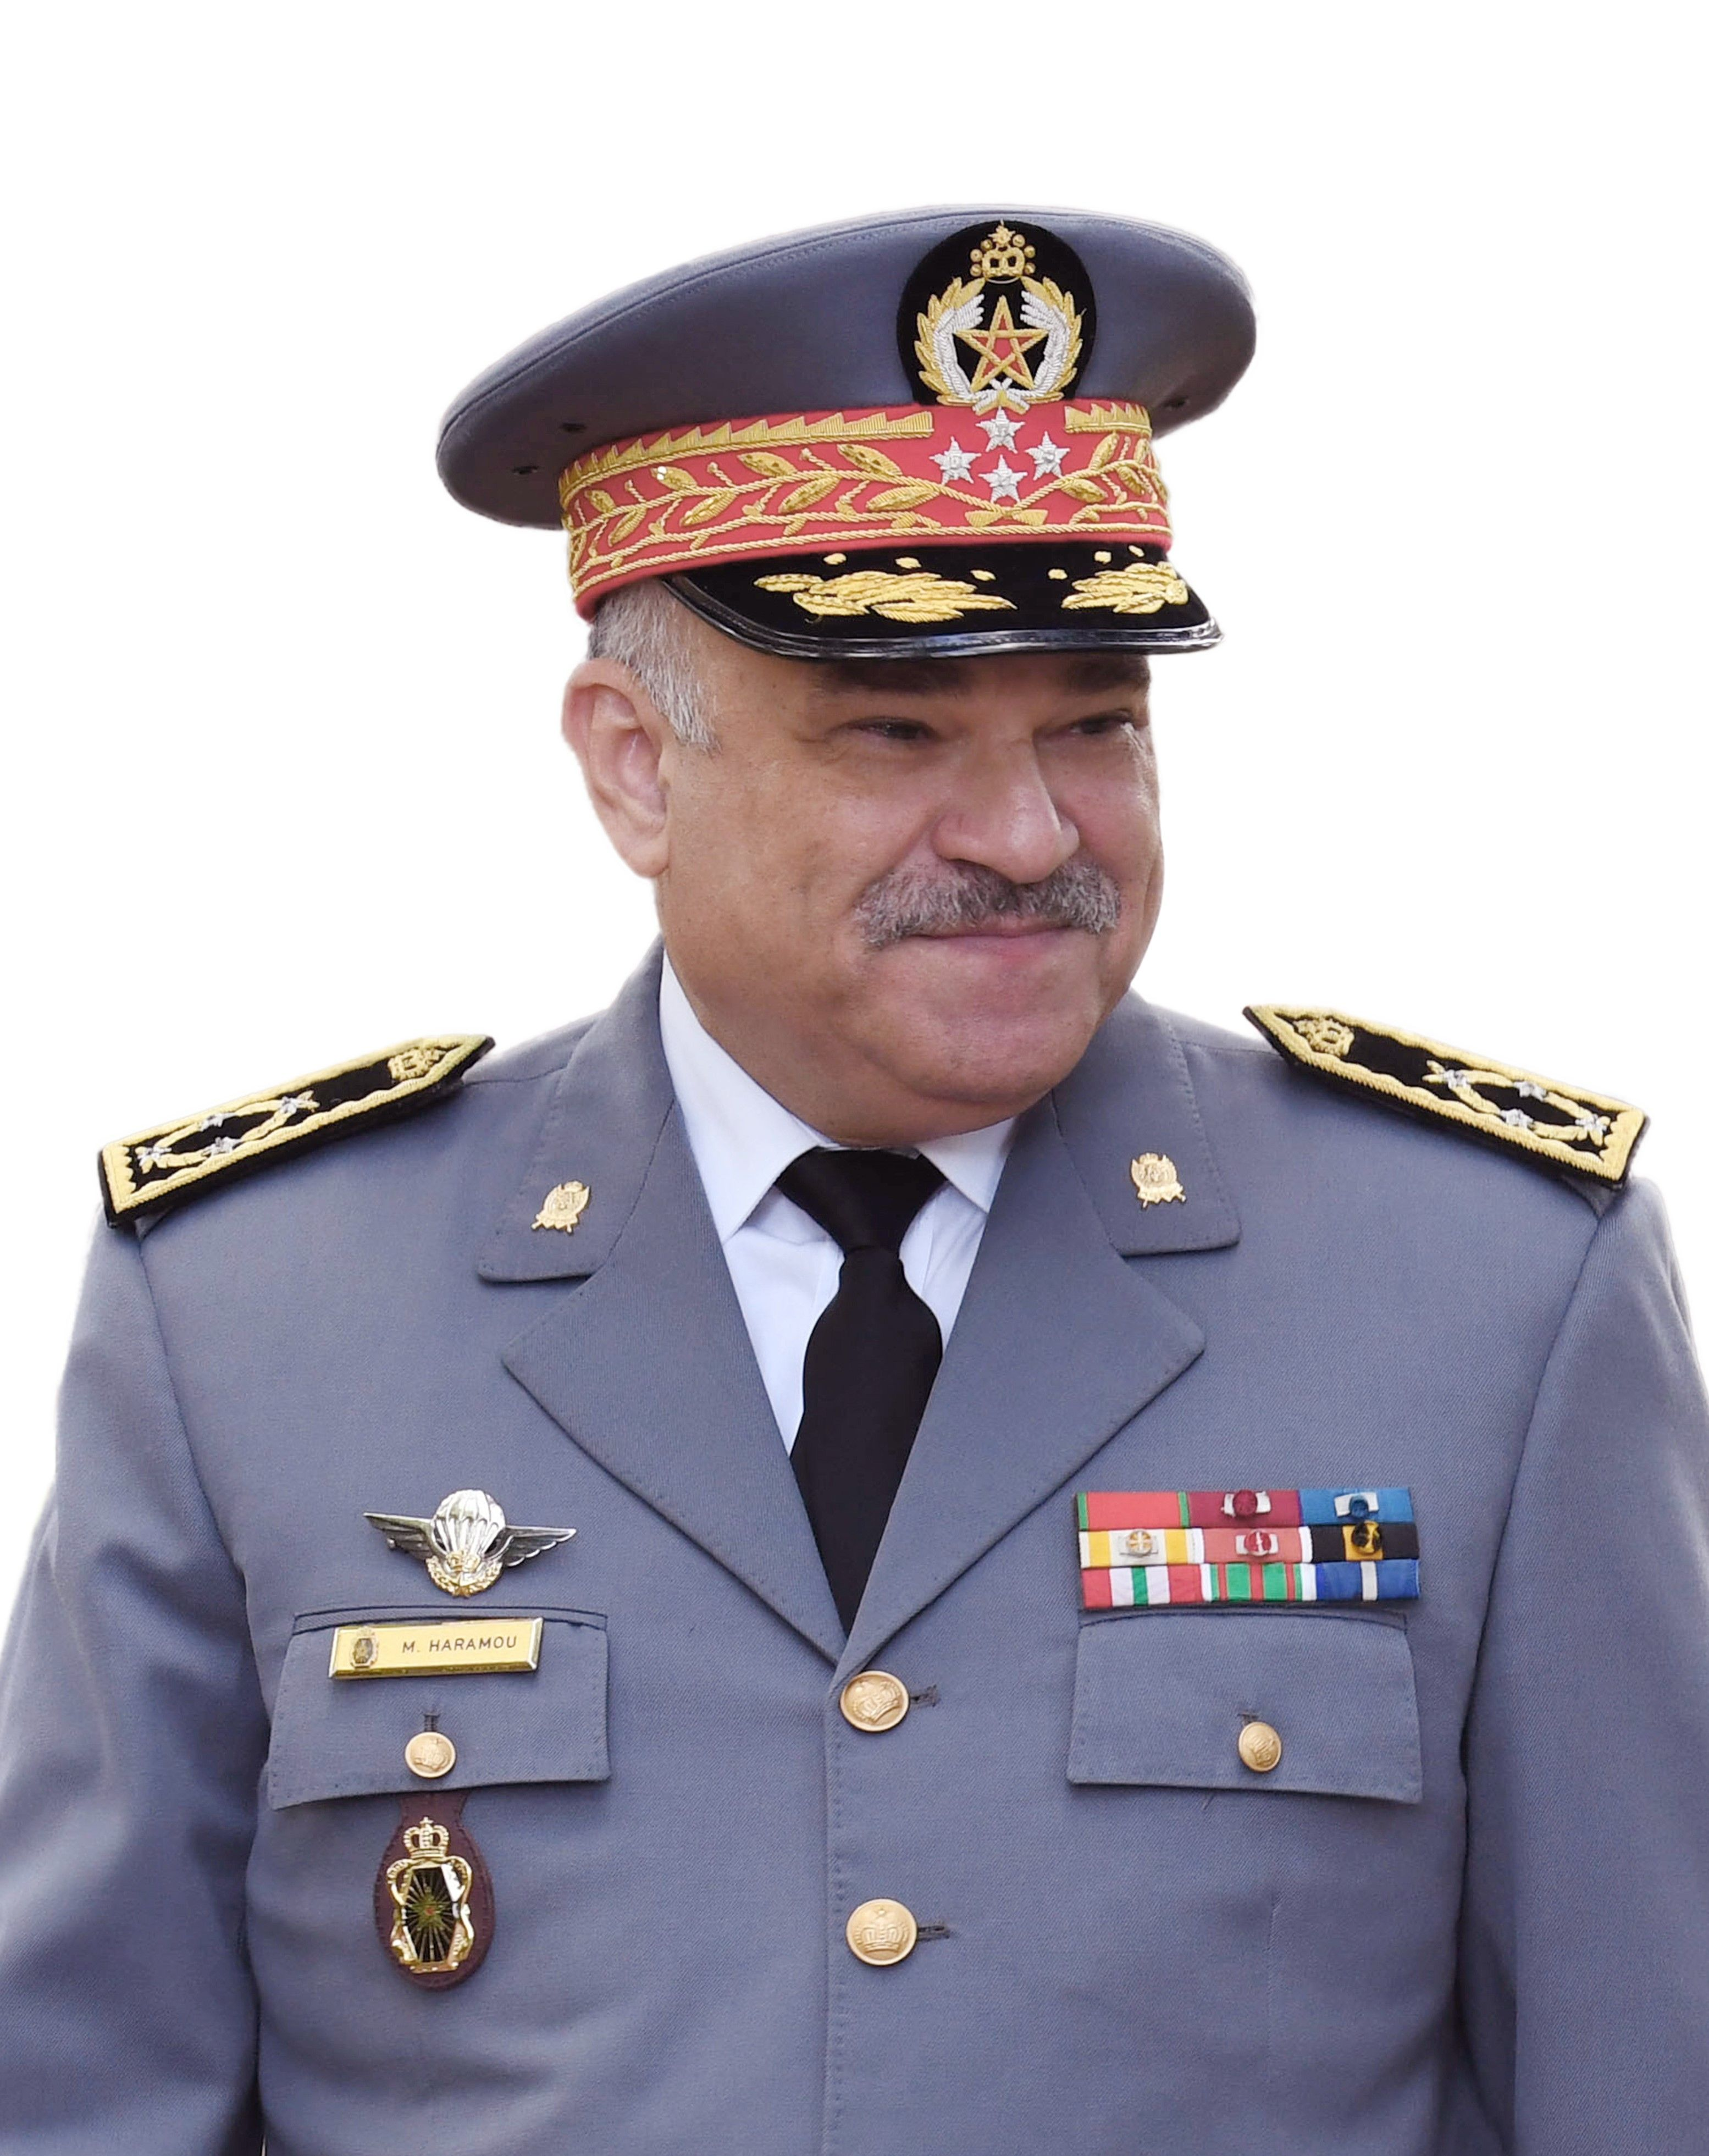 Général de Corps d'Armée Mohammed Haramou 2019-11-Photo-of-the-Commander-of-the-Moroccan-Gendarmerie-Royale